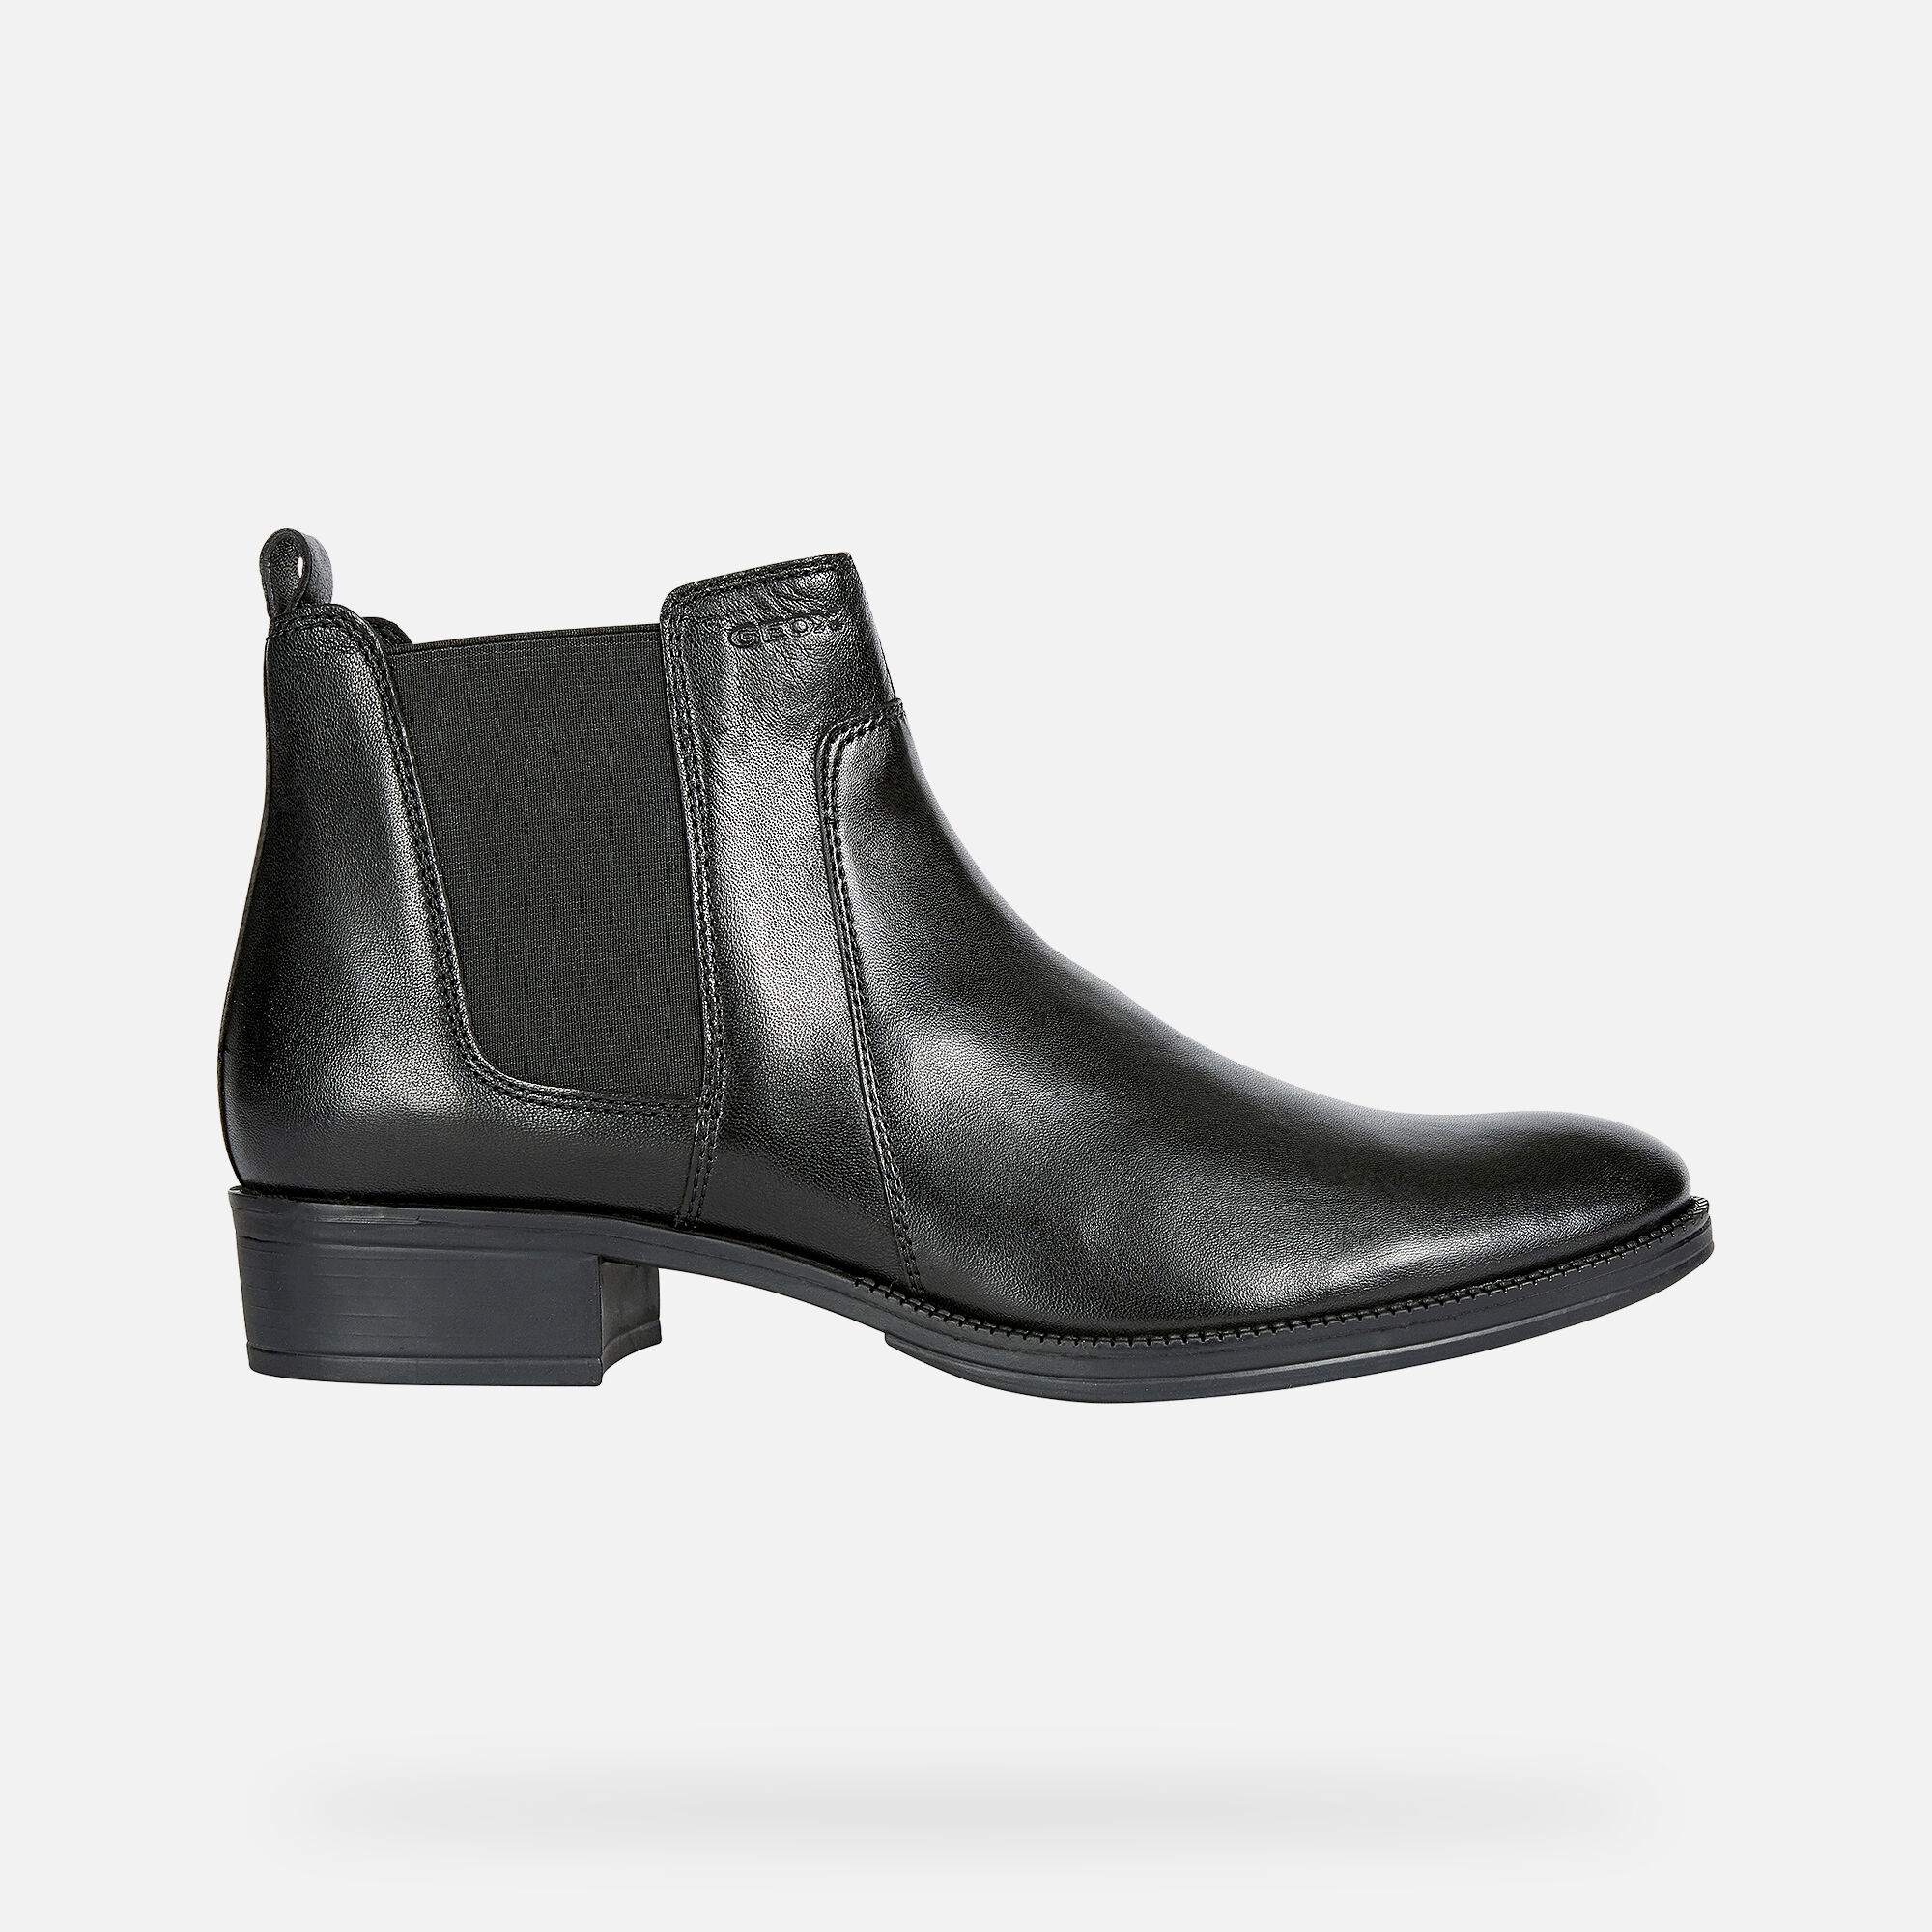 Geox LACEYIN Woman: Black Ankle Boots